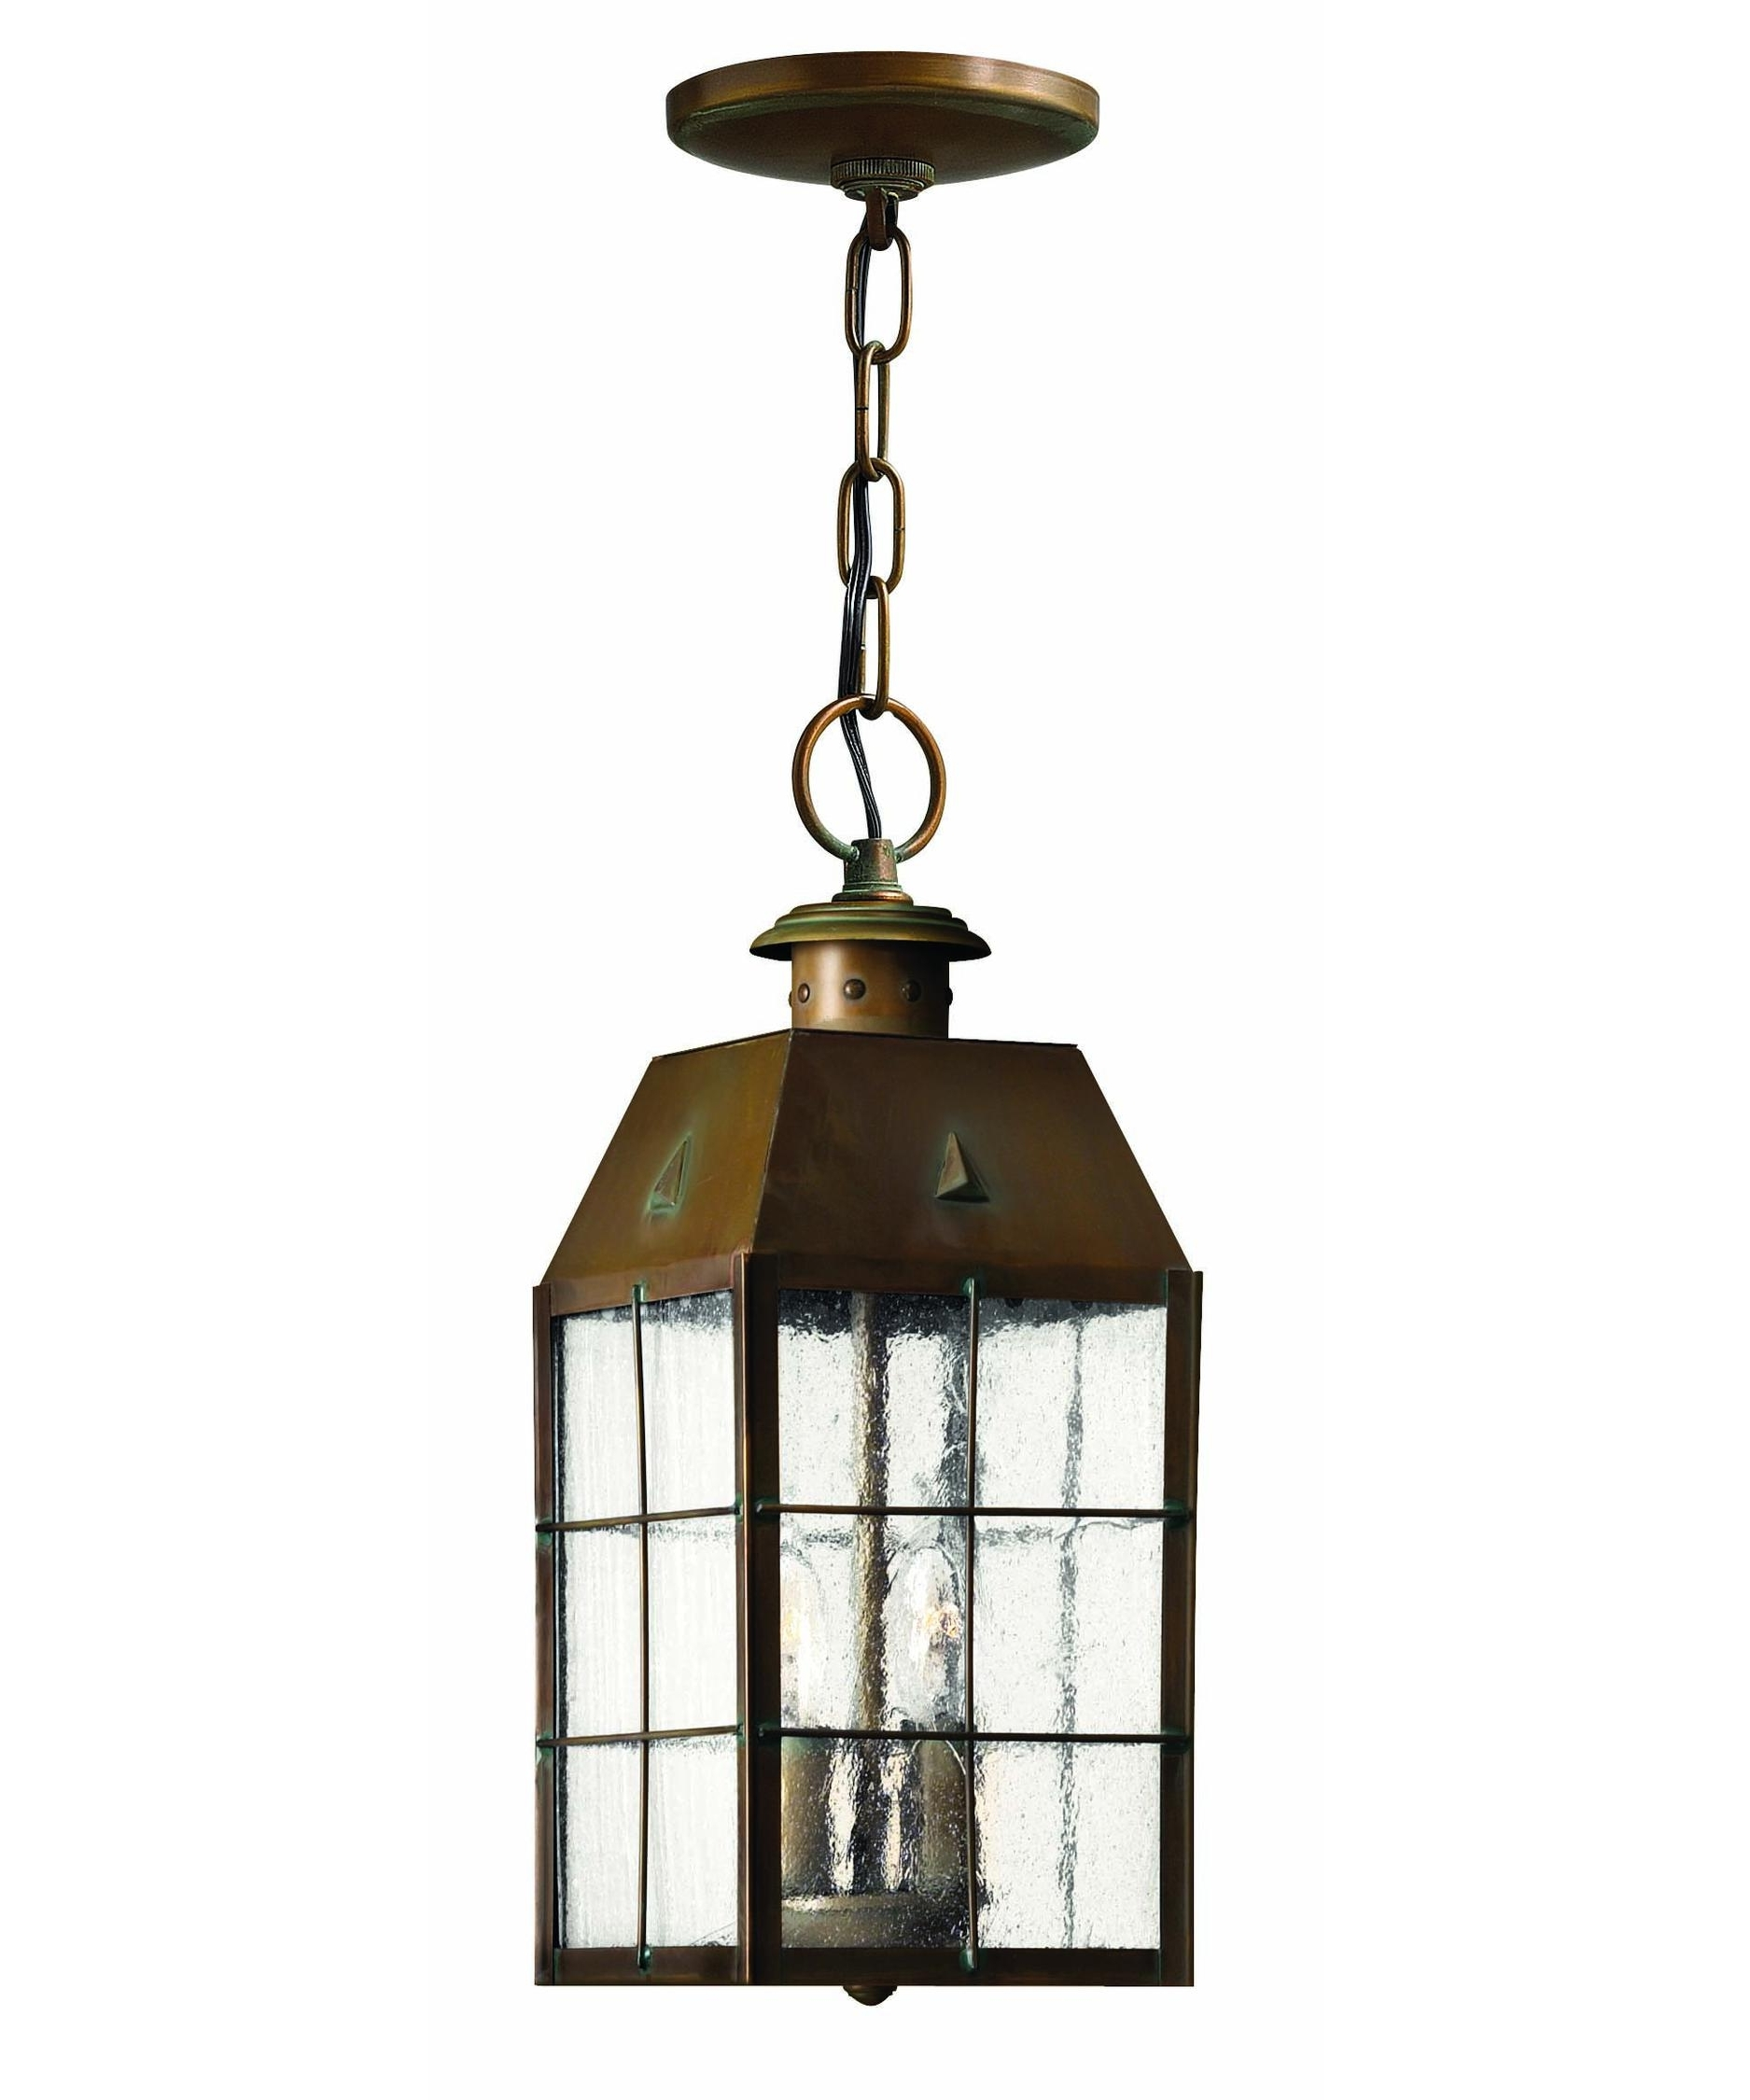 Hinkley Lighting 2372 Nantucket 6 Inch Wide 2 Light Outdoor Hanging Pertaining To Current Outdoor Ceiling Mount Porch Lights (View 12 of 20)